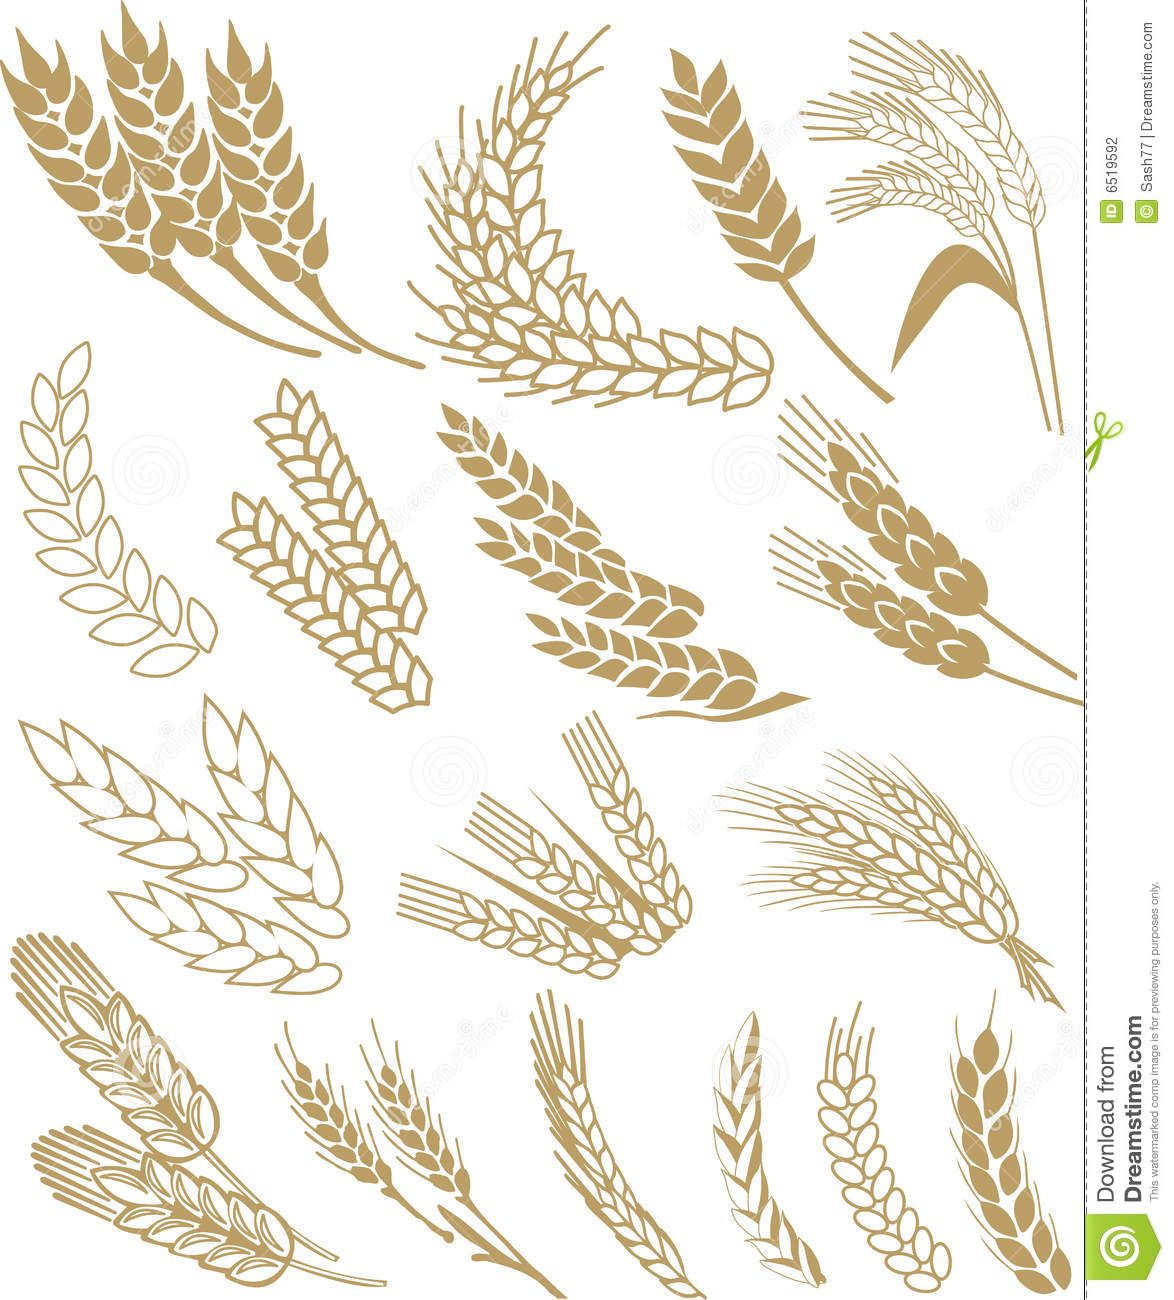 Pin on inbetweening . Wheat clipart vector